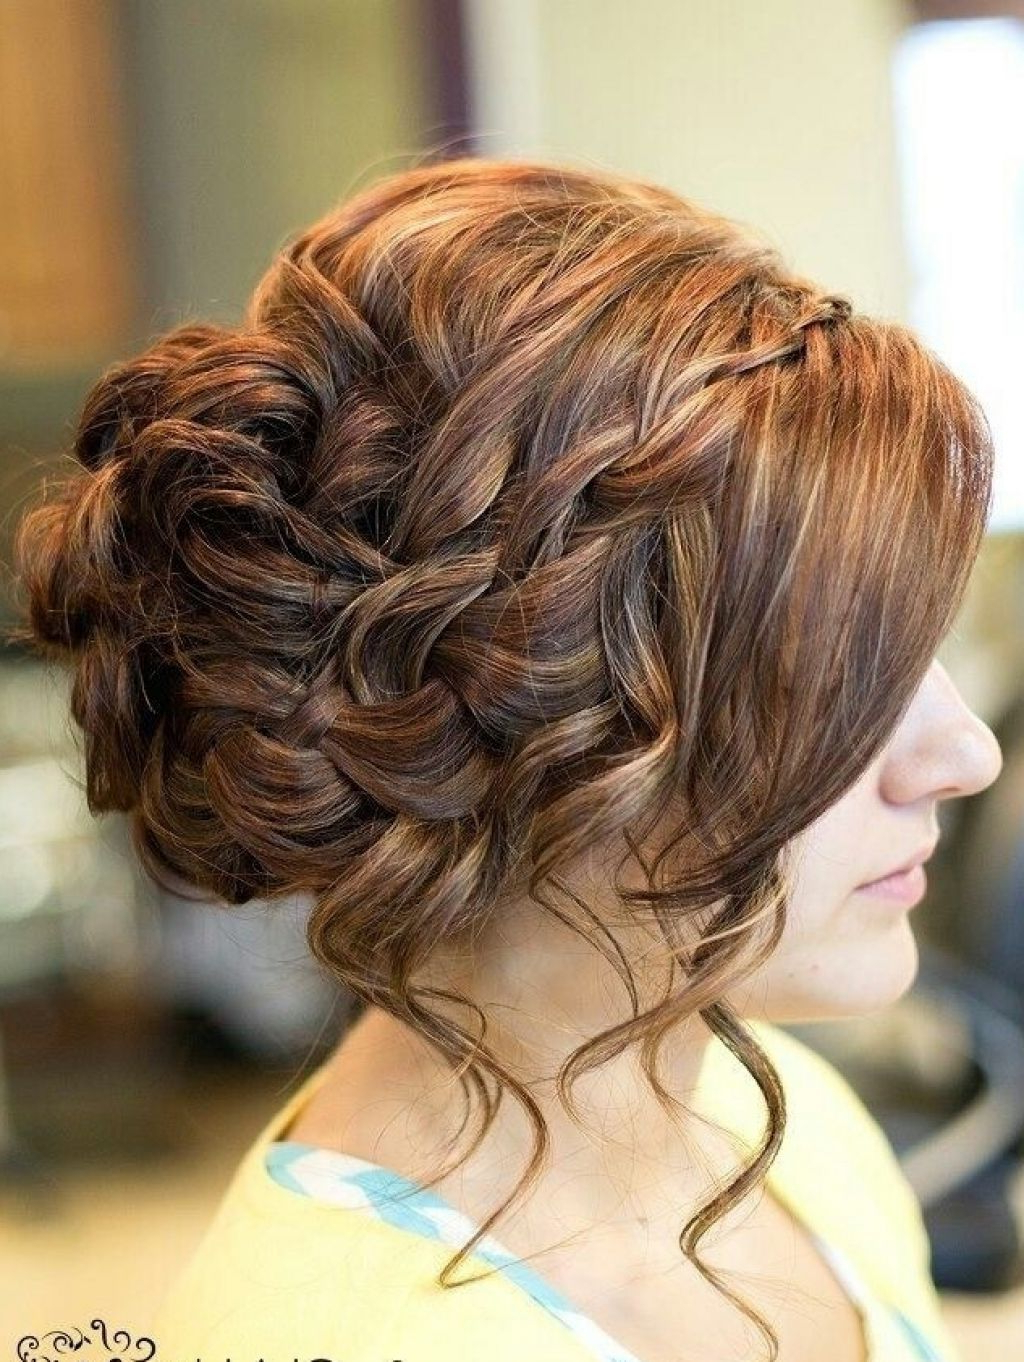 14 Prom Hairstyles For Long Hair That Are Simply Adorable Inside Current Fishtailed Snail Bun Prom Hairstyles (Gallery 10 of 20)